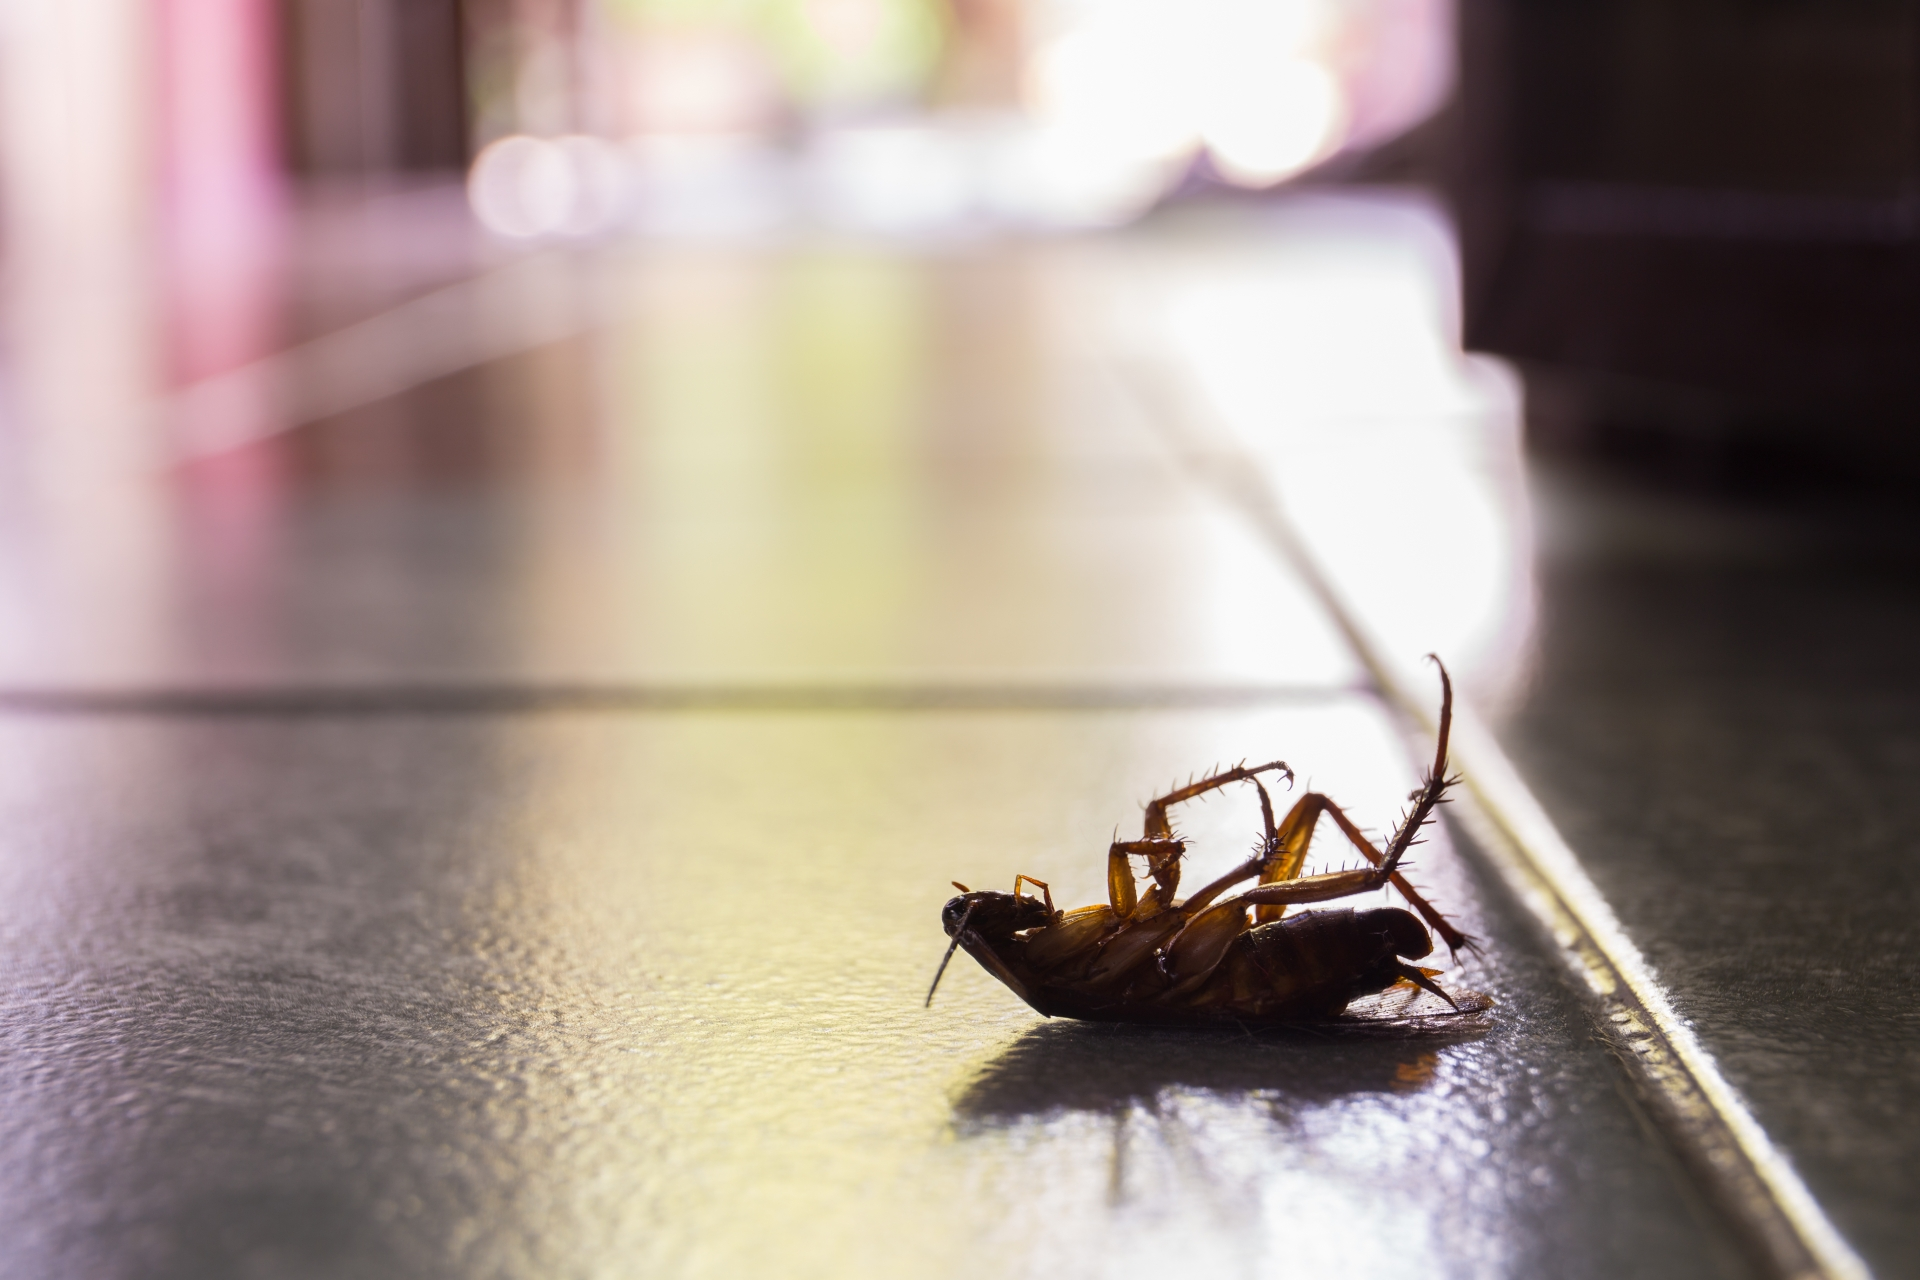 Cockroach Control, Pest Control in Clerkenwell, Finsbury, Barbican, EC1. Call Now 020 8166 9746